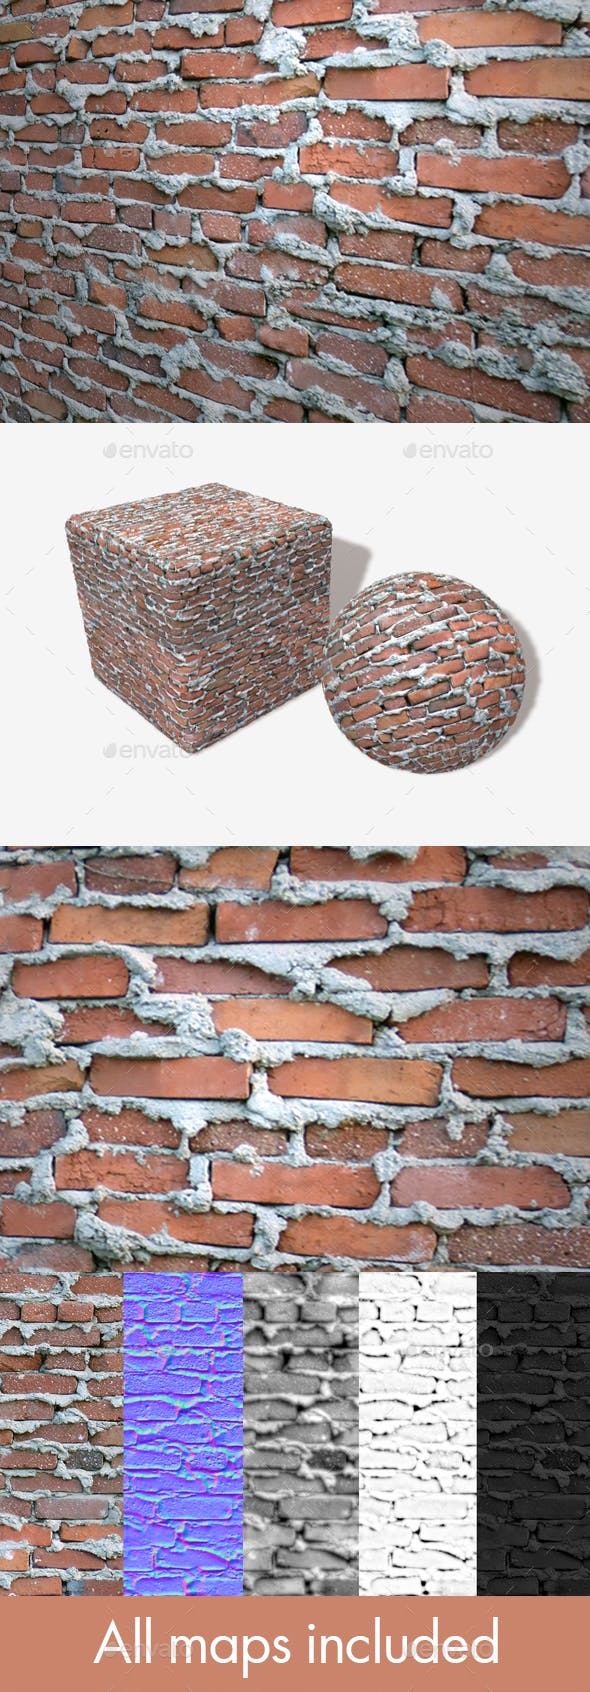 Extremely Bad Brickwork Seamless Texture - 3DOcean Item for Sale